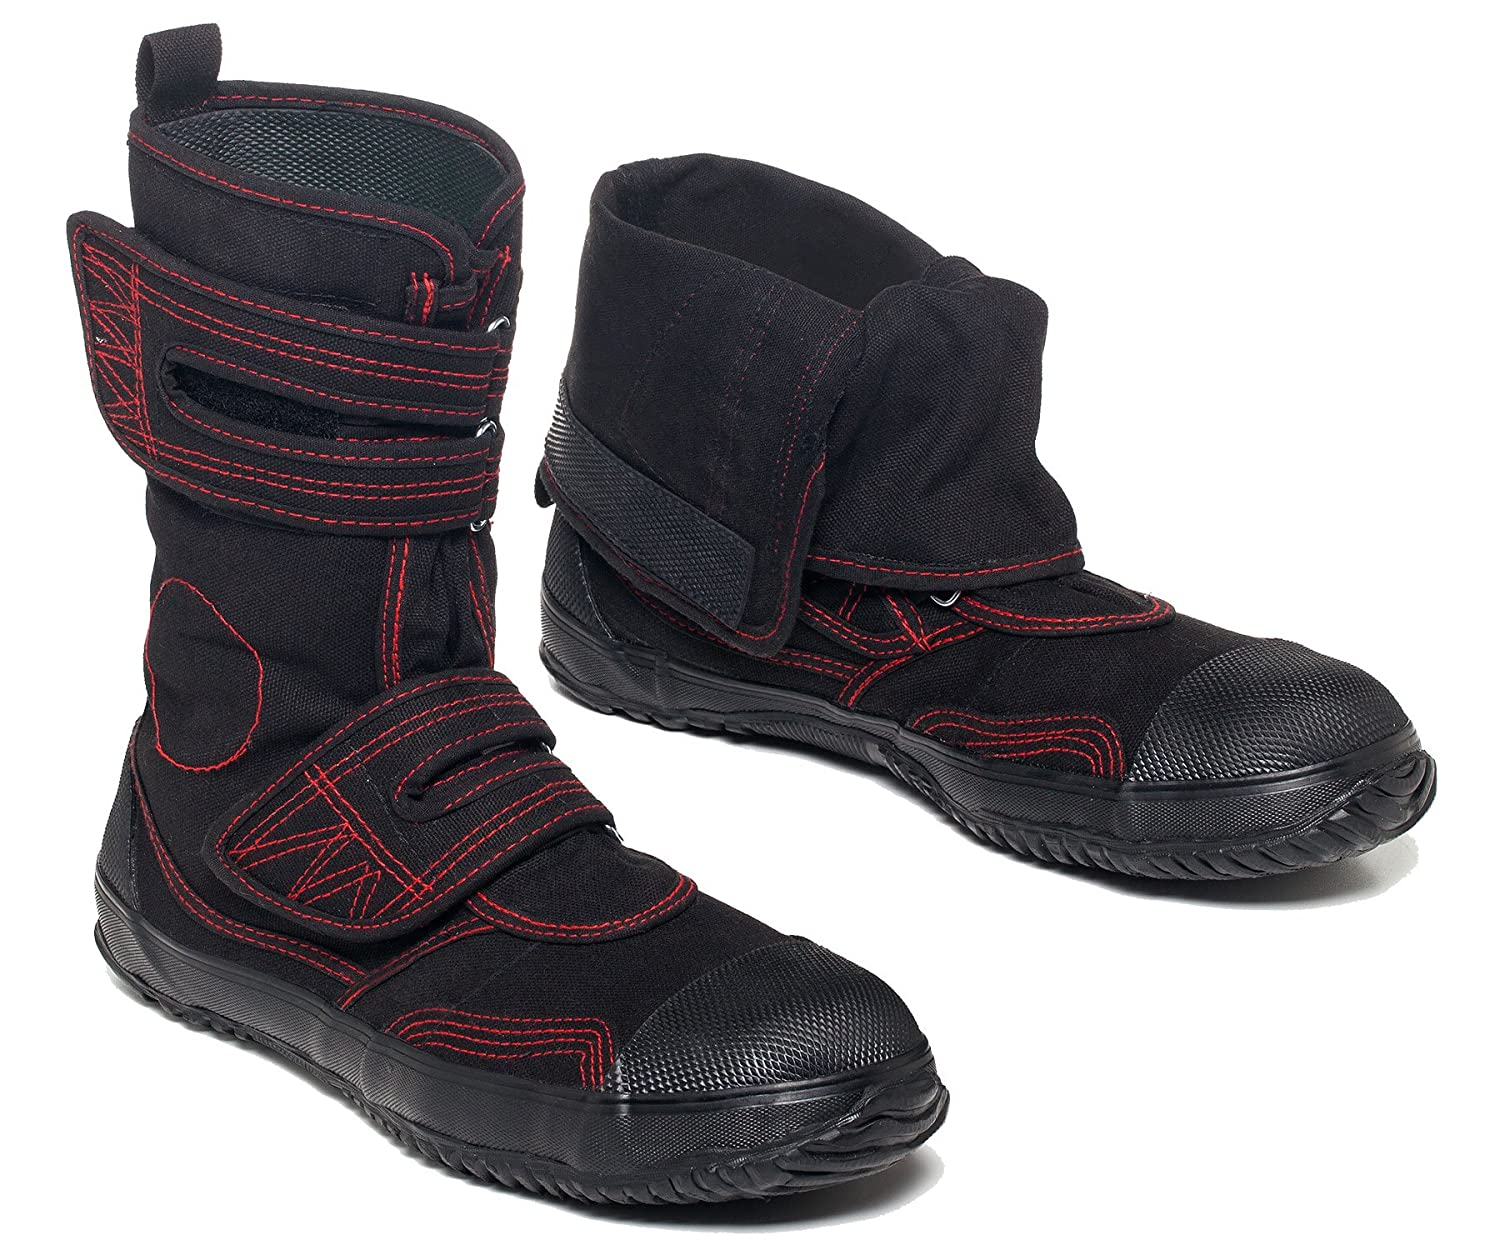 fugu Sa-Me Japanese Vegan Boots, Eco-Friendly Mid-Calf Boots with Rubber Sole B01524RZN8 USW 8.5 - 9 JP25|Red & Black